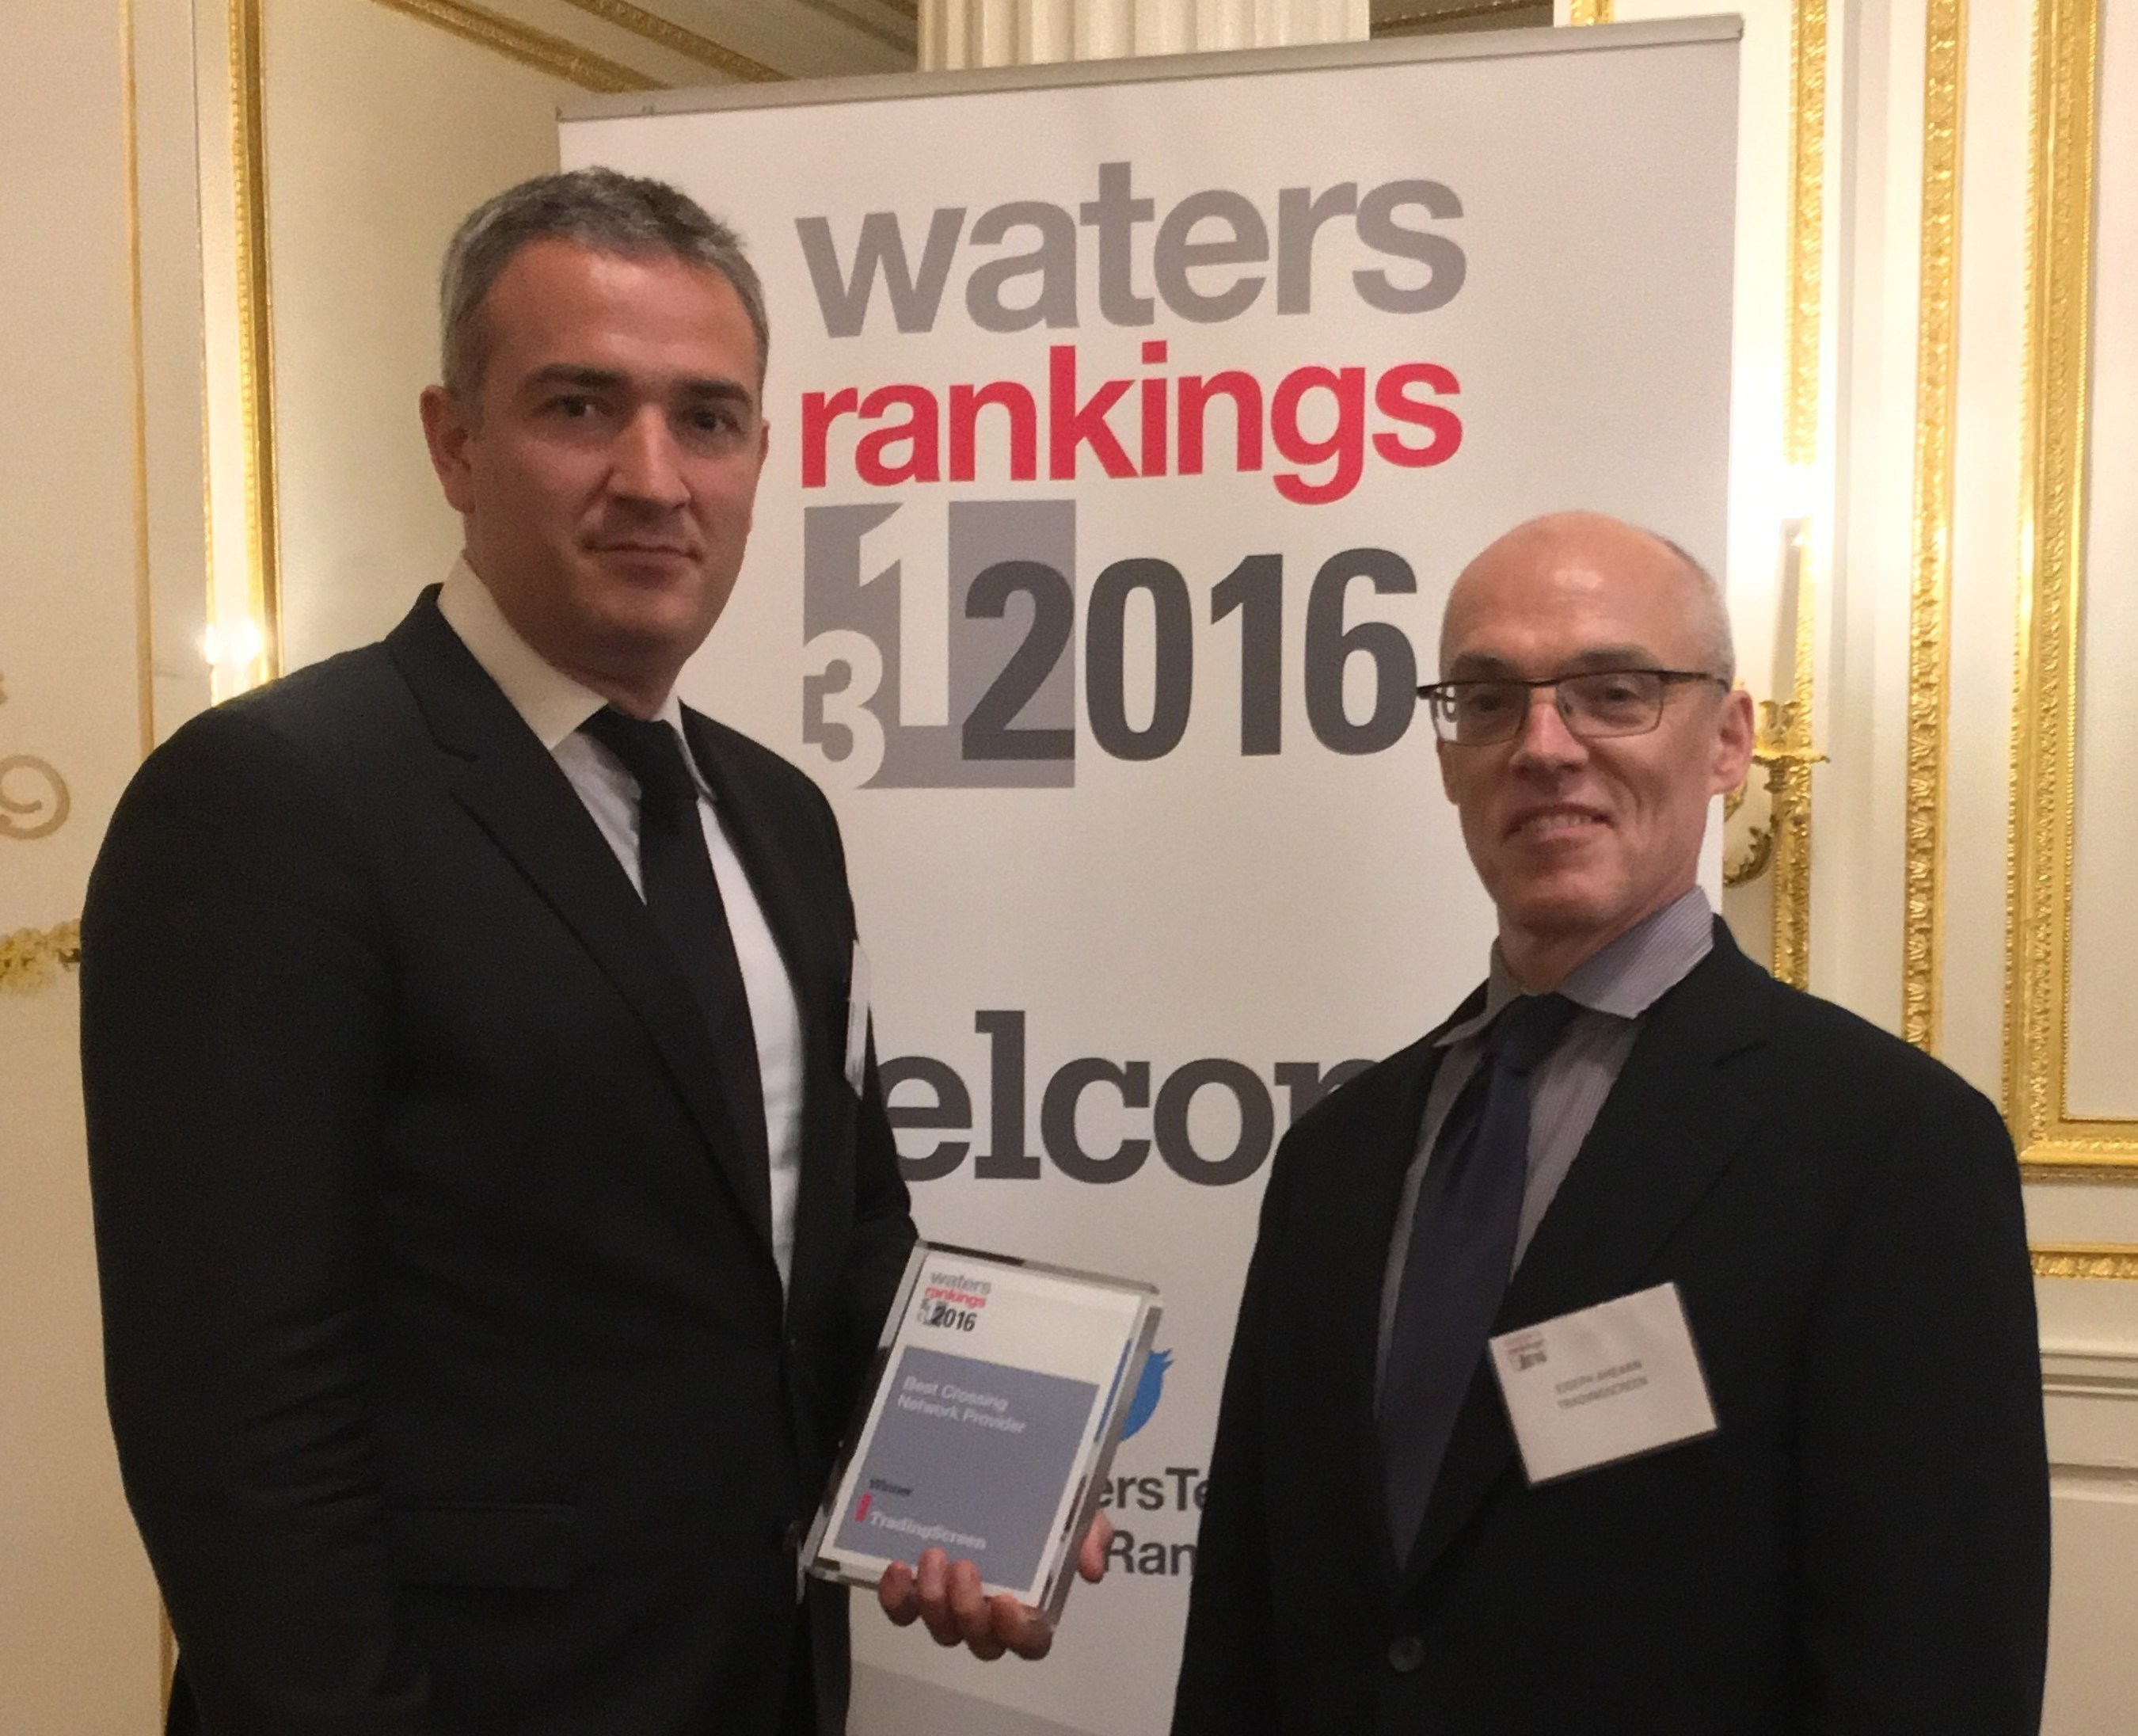 Pictured: Alexandre Carteau, TradeCross Business Manager & Joseph Ahearn, COO & Co-Founder, TradingScreen, receives the WatersTechnology award at the Metropolitan Club in NY.